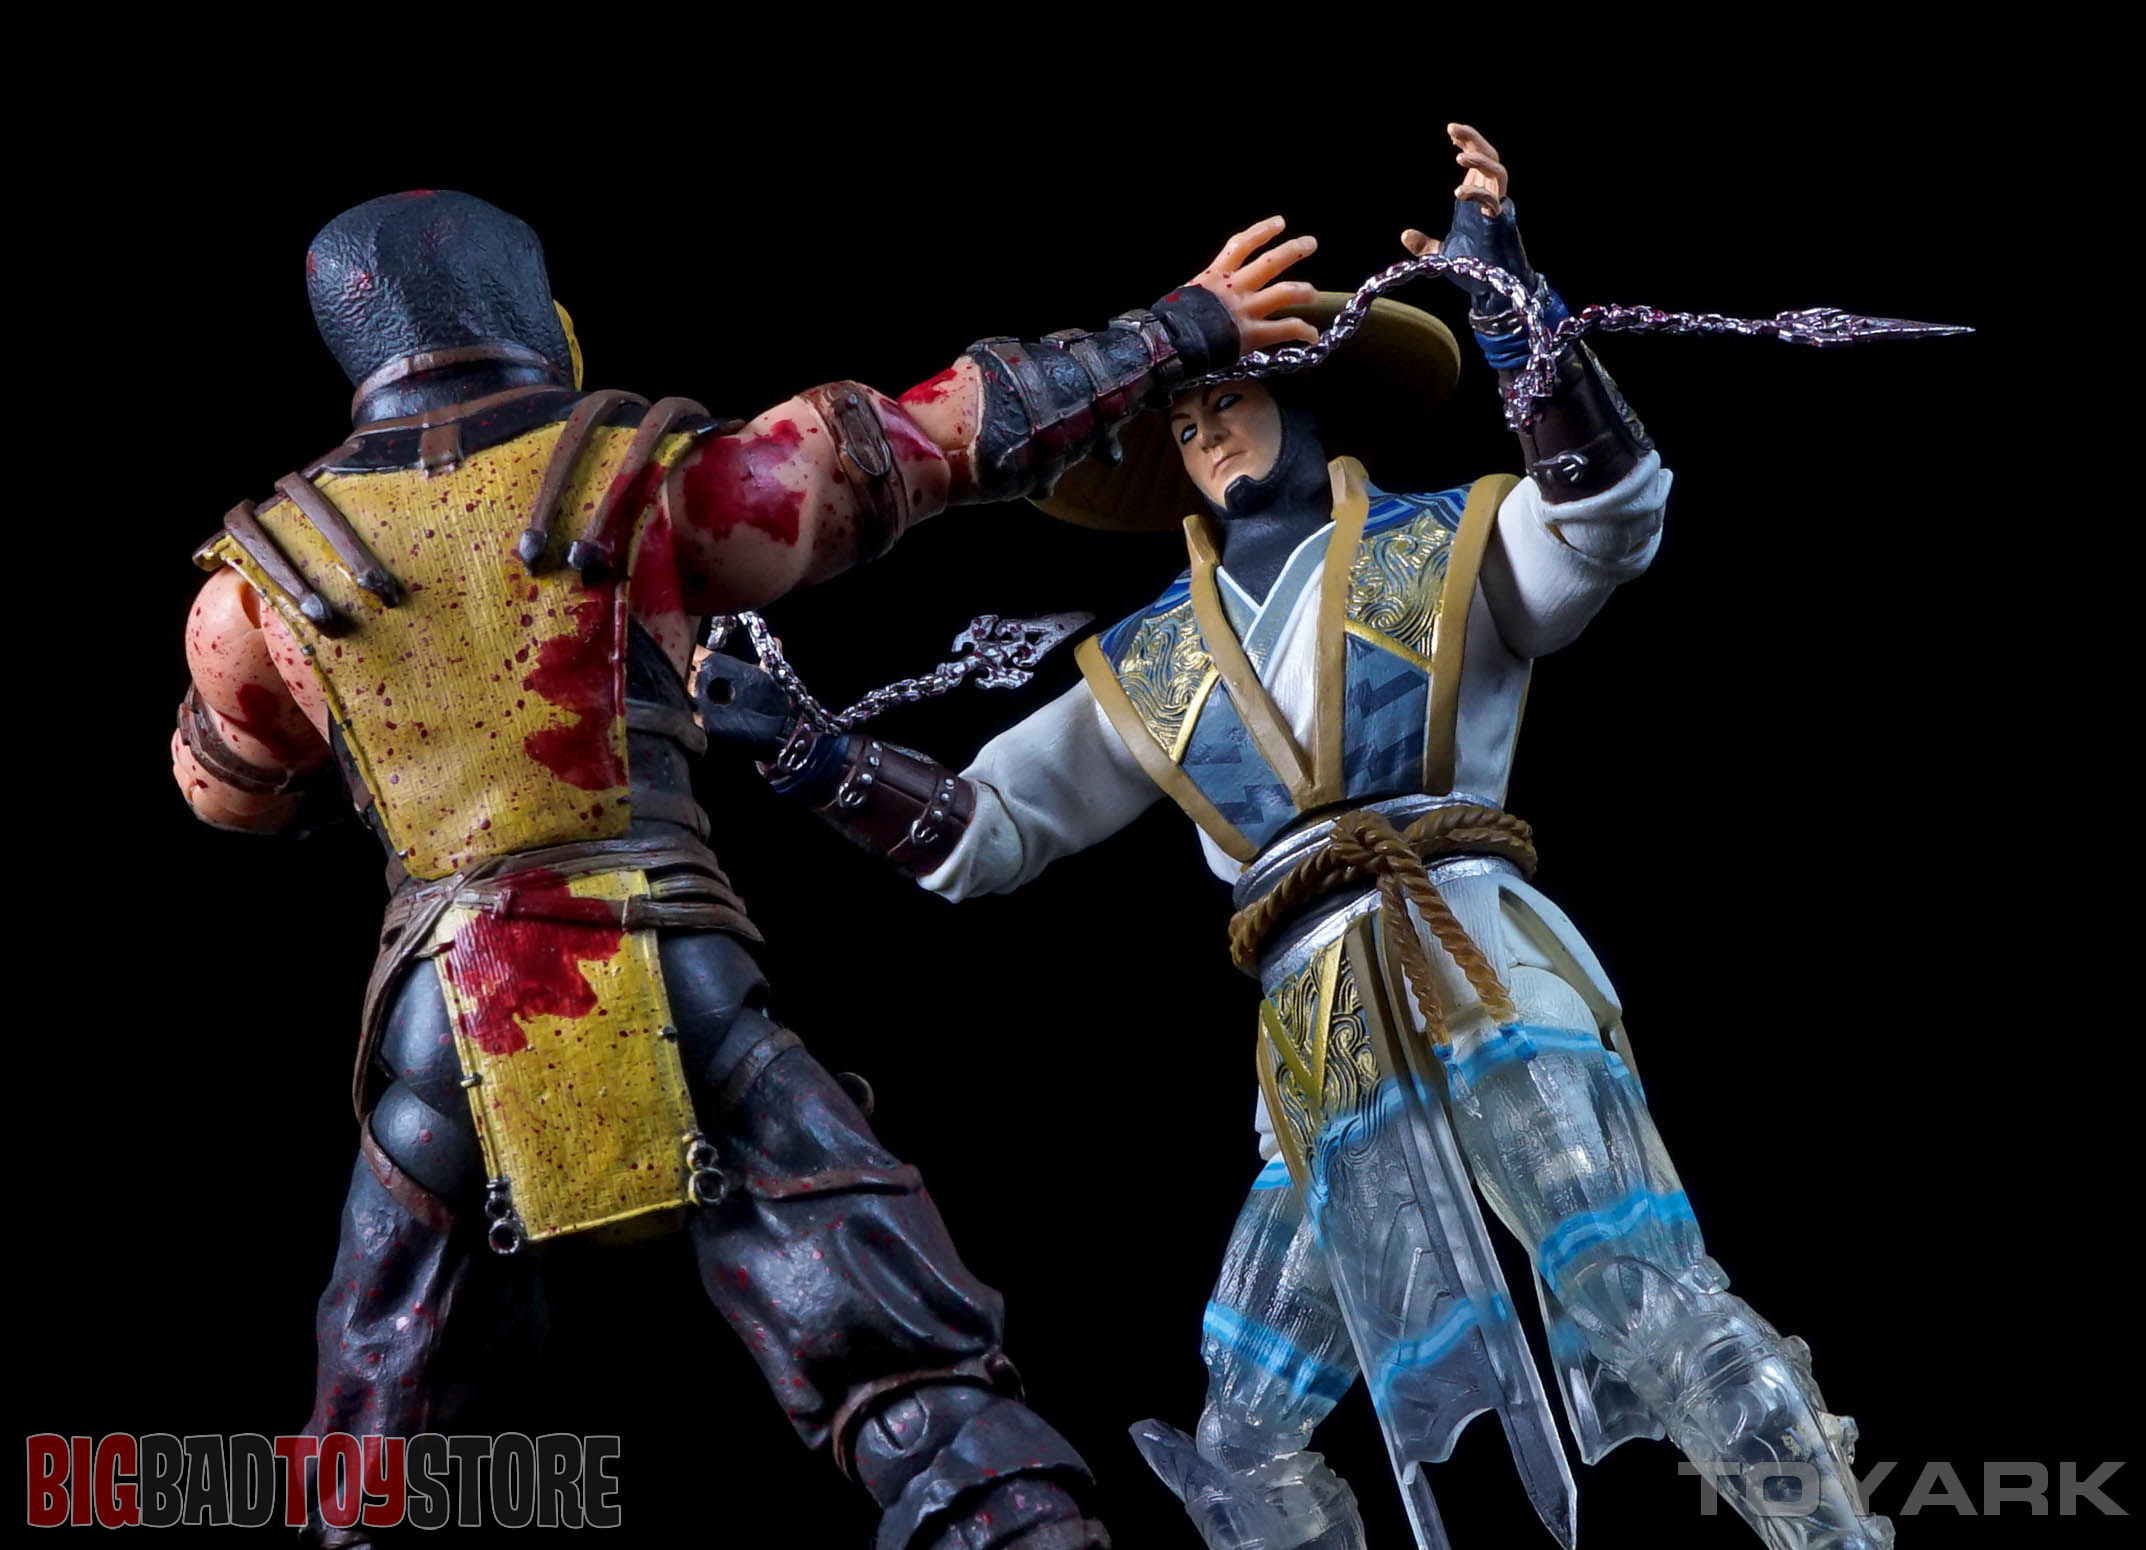 http://news.toyark.com/wp-content/uploads/sites/4/2015/10/Mezco-PX-Mortal-Kombat-X-057.jpg